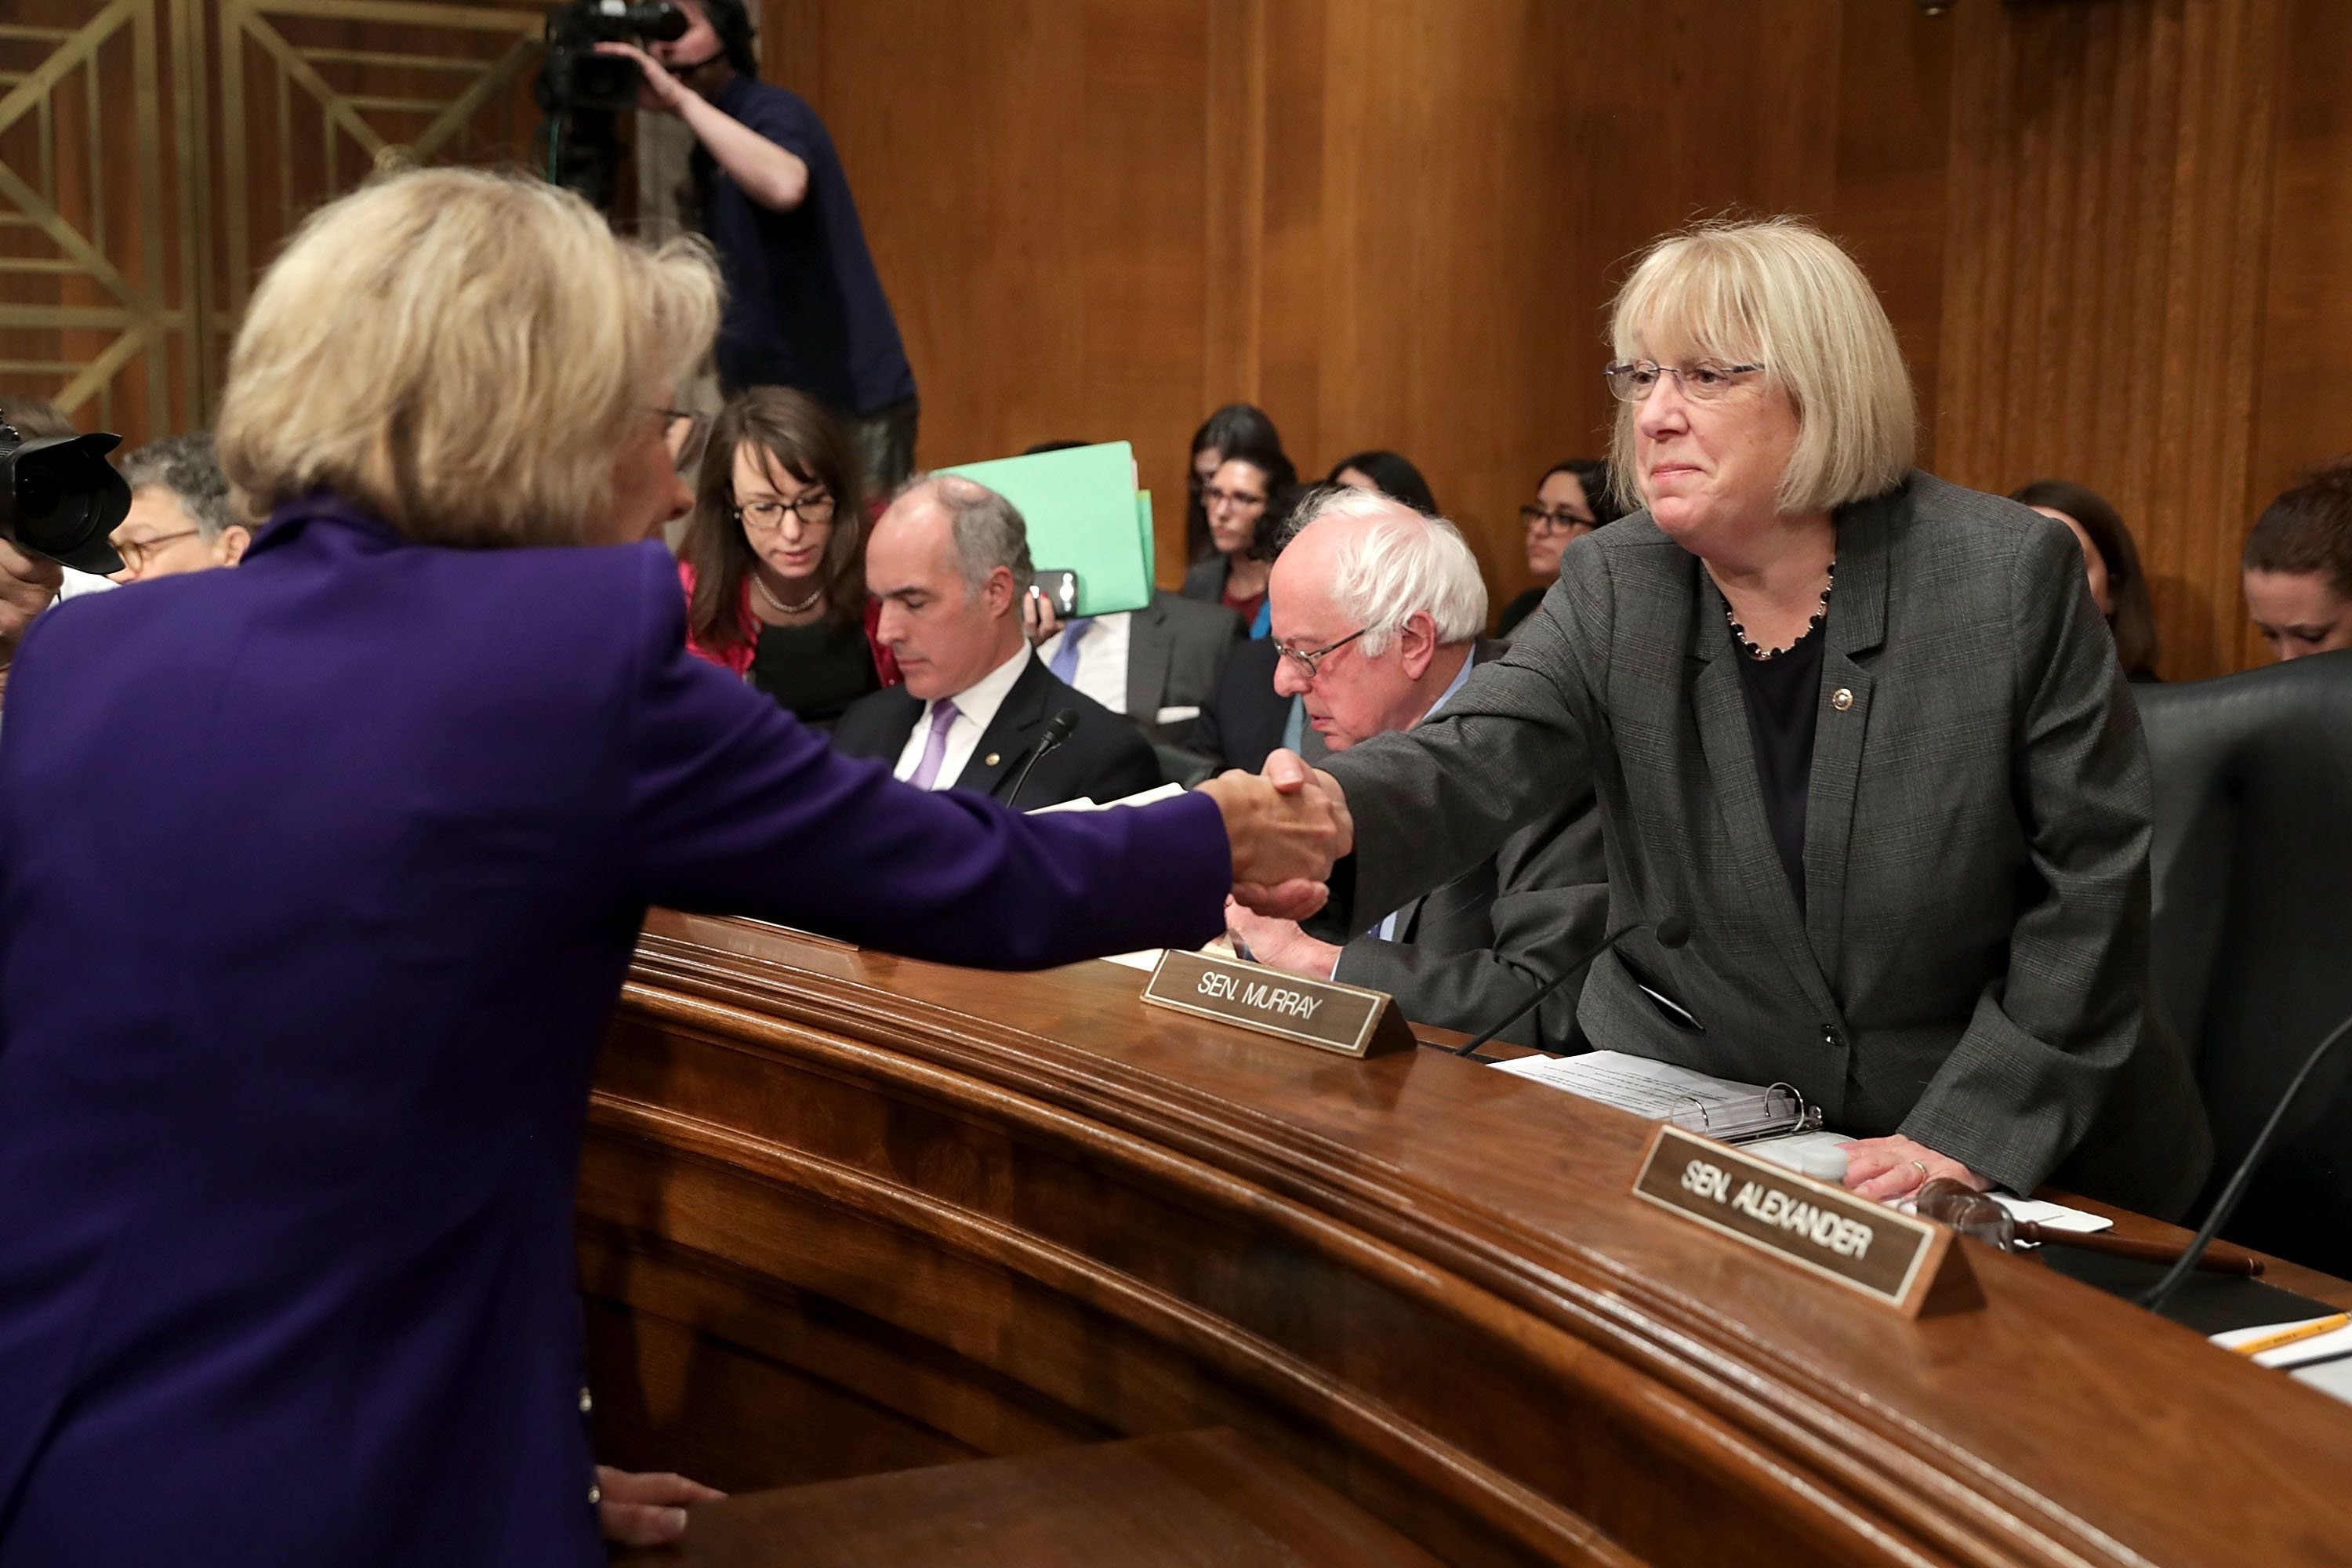 WASHINGTON, DC - JANUARY 17:  Betsy DeVos (L), President-elect Donald Trump's pick to be the next Secretary of Education, greets Senate Health, Education, Labor and Pensions Committee ranking member Sen. Patty Murray (D-WA) before DeVos' confirmation hearing in the Dirksen Senate Office Building on Capitol Hill  January 17, 2017 in Washington, DC. DeVos is known for her advocacy of school choice and education voucher programs and is a long-time leader of the Republican Party in Michigan.  (Photo by Chip Somodevilla/Getty Images)